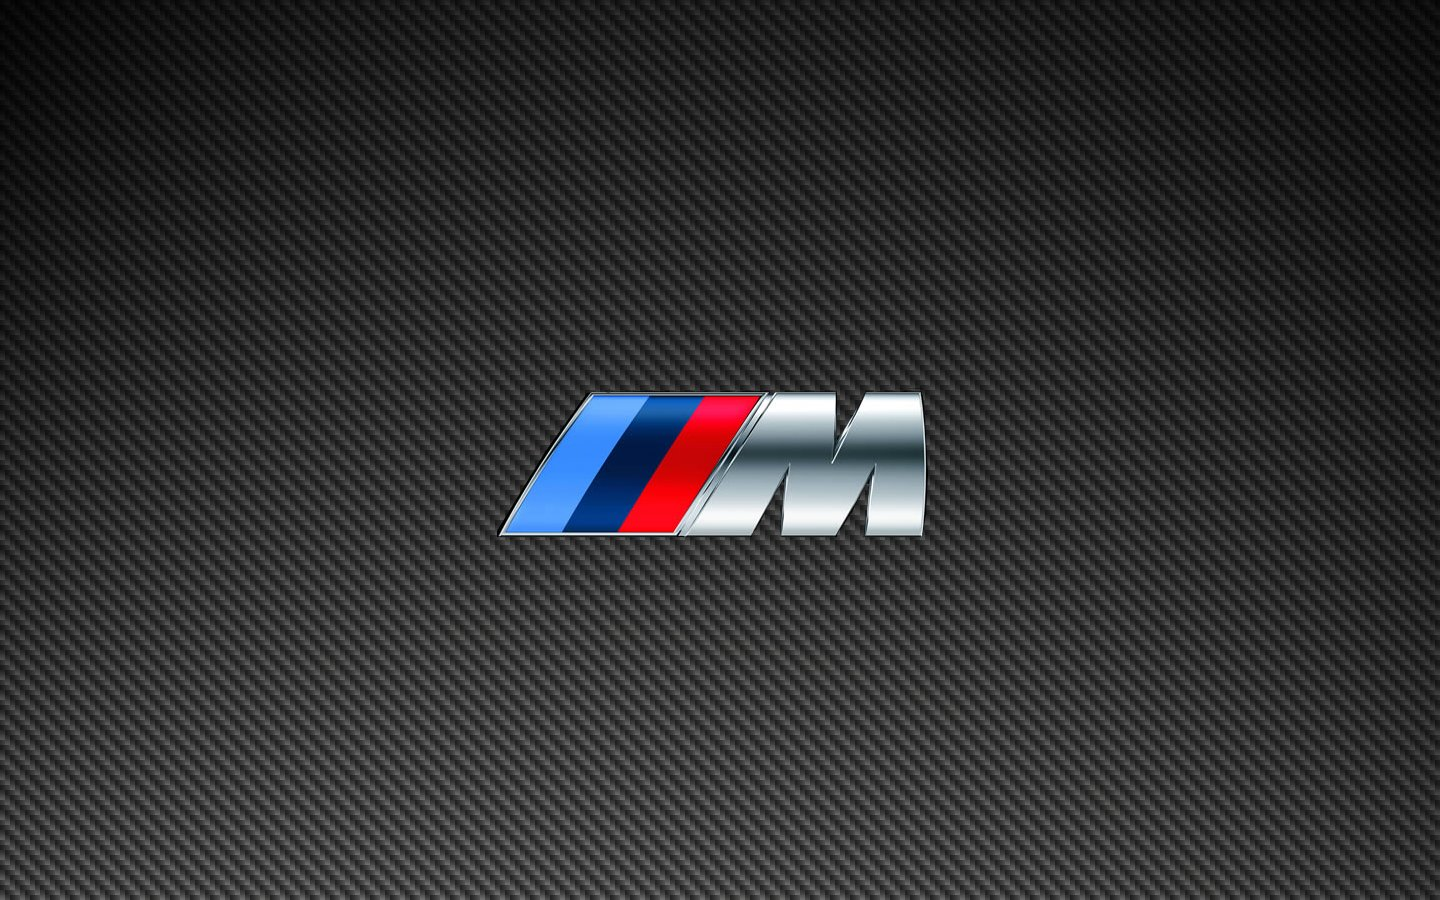 BMW M Logo Desktop and mobile wallpaper Wallippo 1440x900